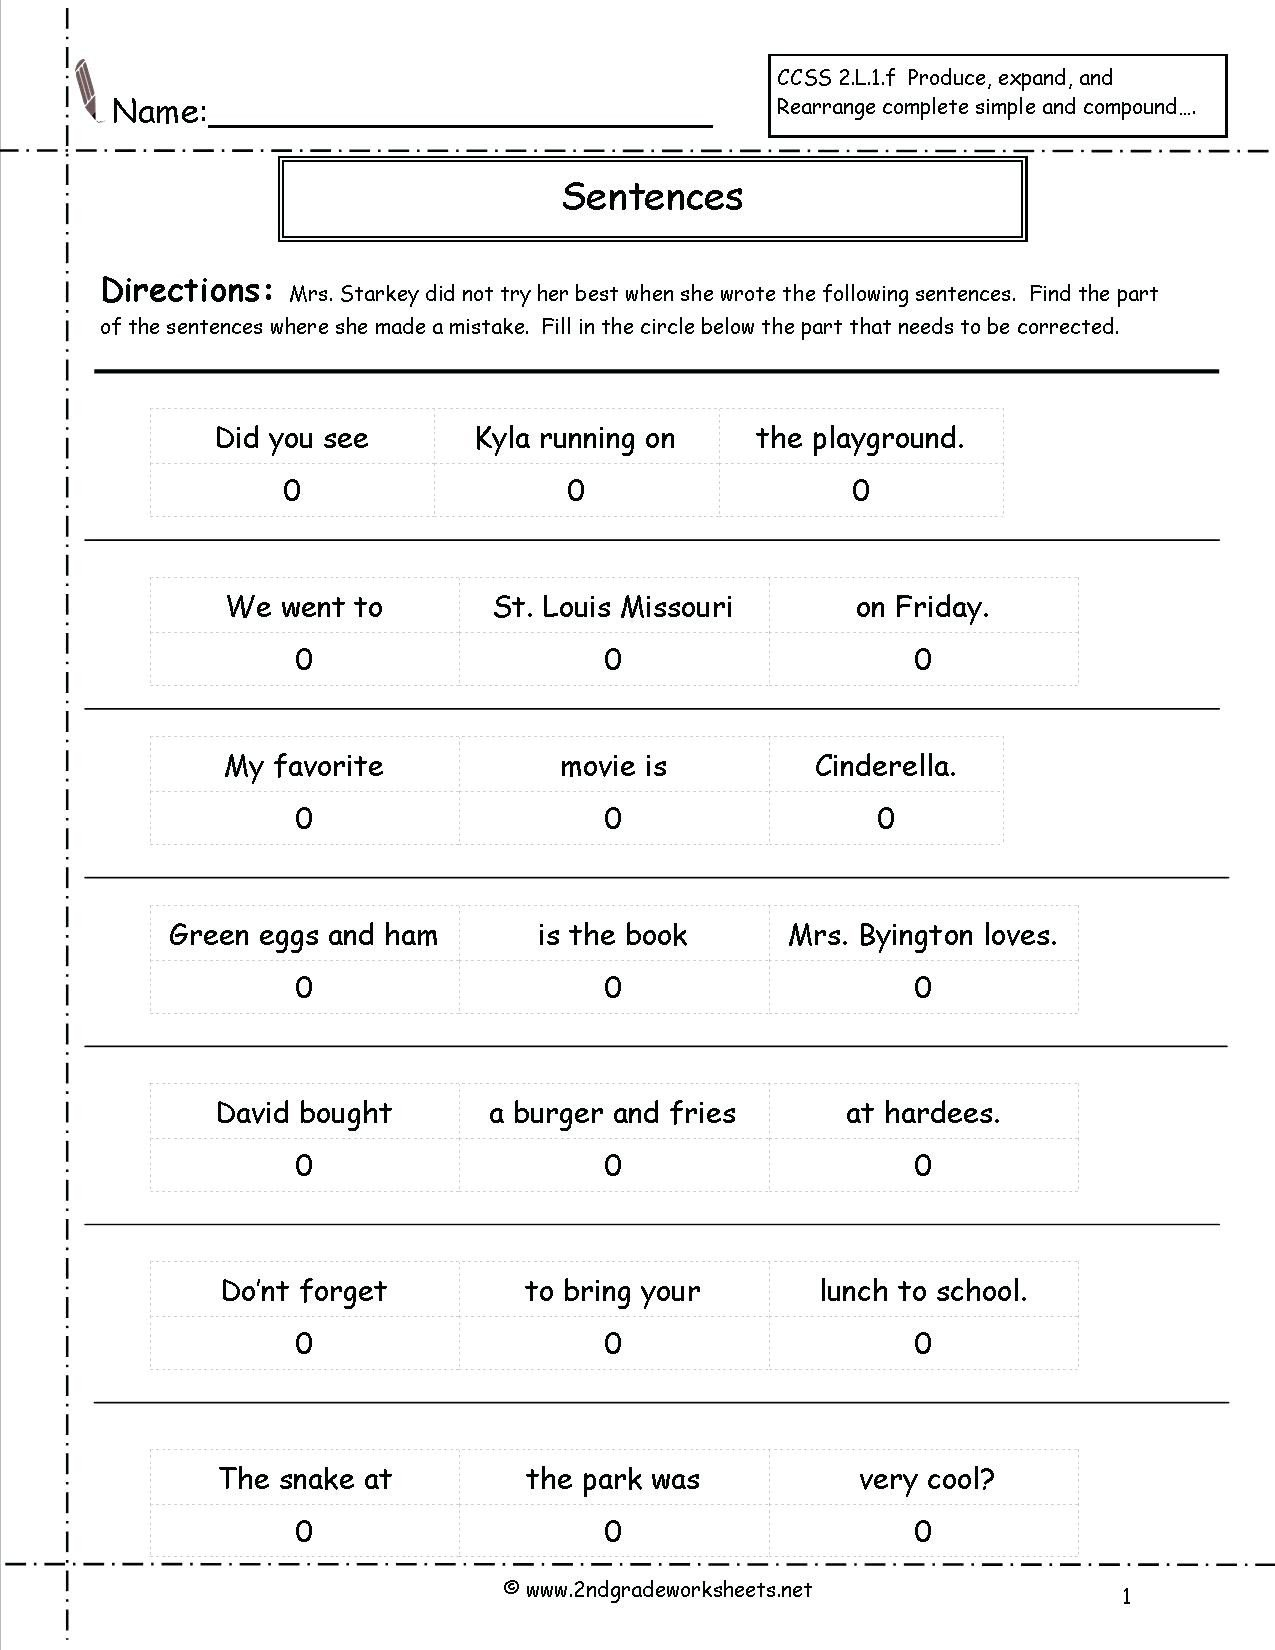 Complete Sentences Worksheets 3rd Grade Types Sentences Worksheets to Download Types Of